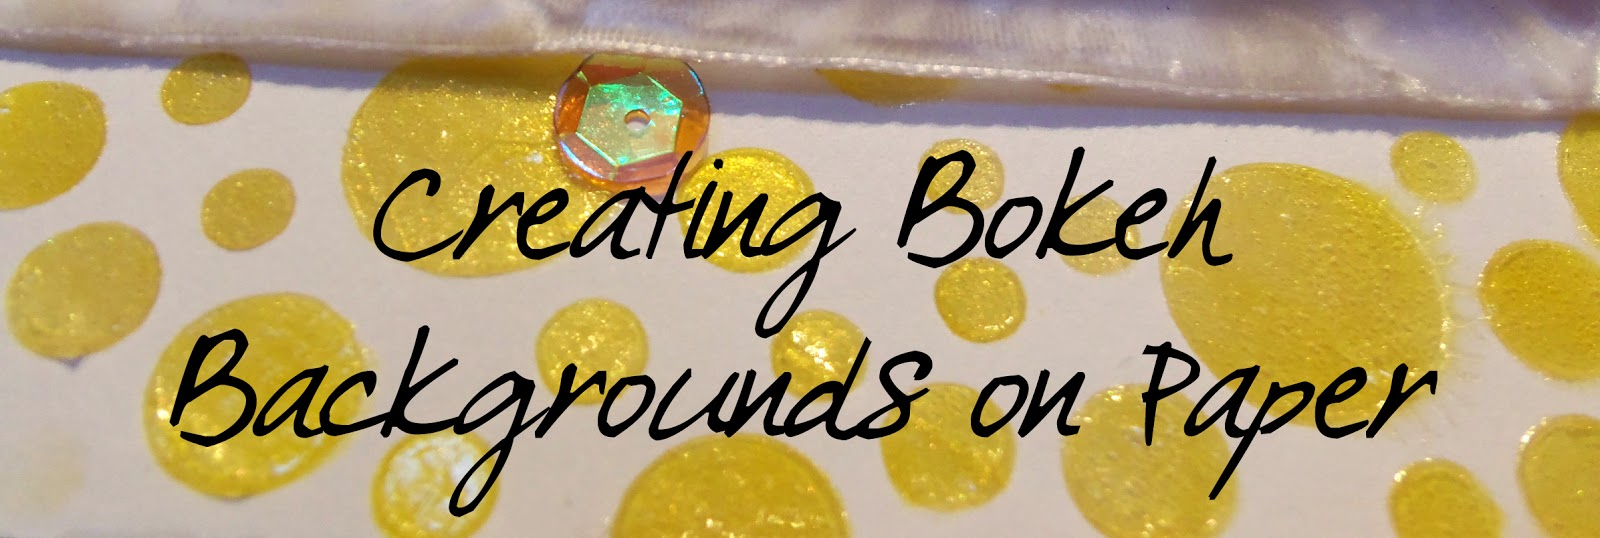 Creating Bokeh Backgrounds on Paper